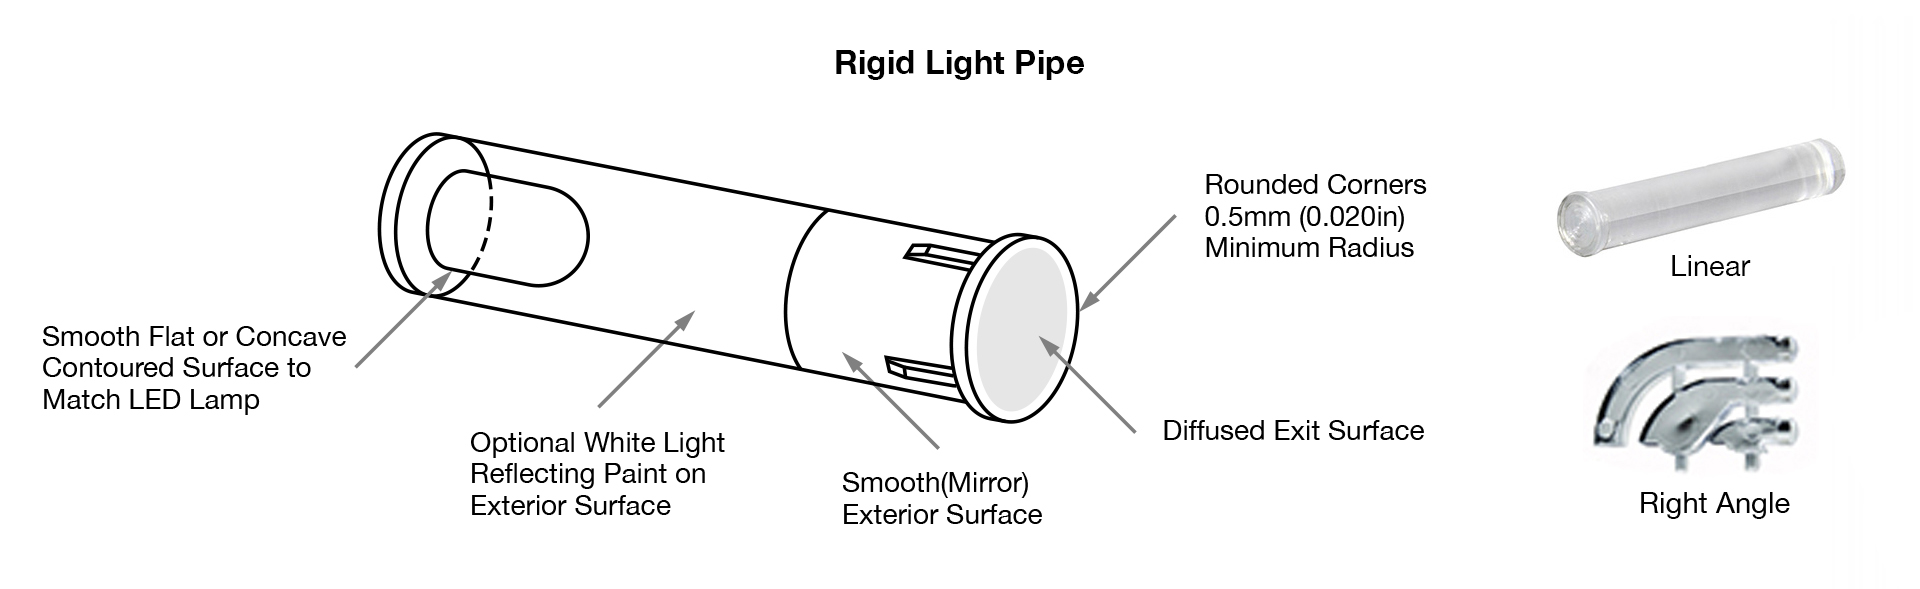 vcc light pipe design guide